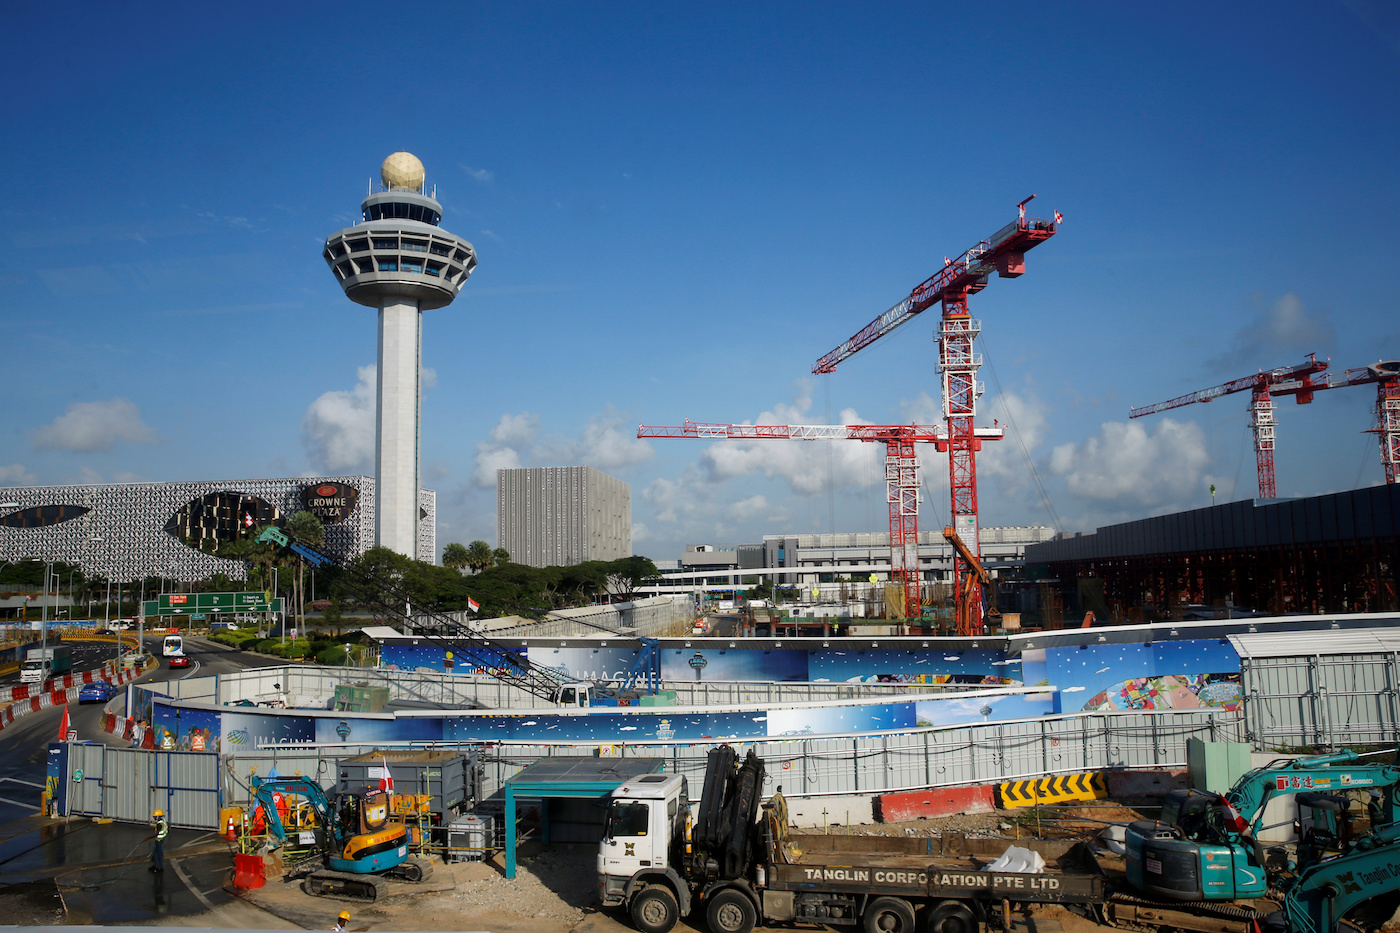 Construction takes place next to the Changi Airport control tower for Project Jewel in Singapore August 17, 2016. REUTERS/Edgar Su